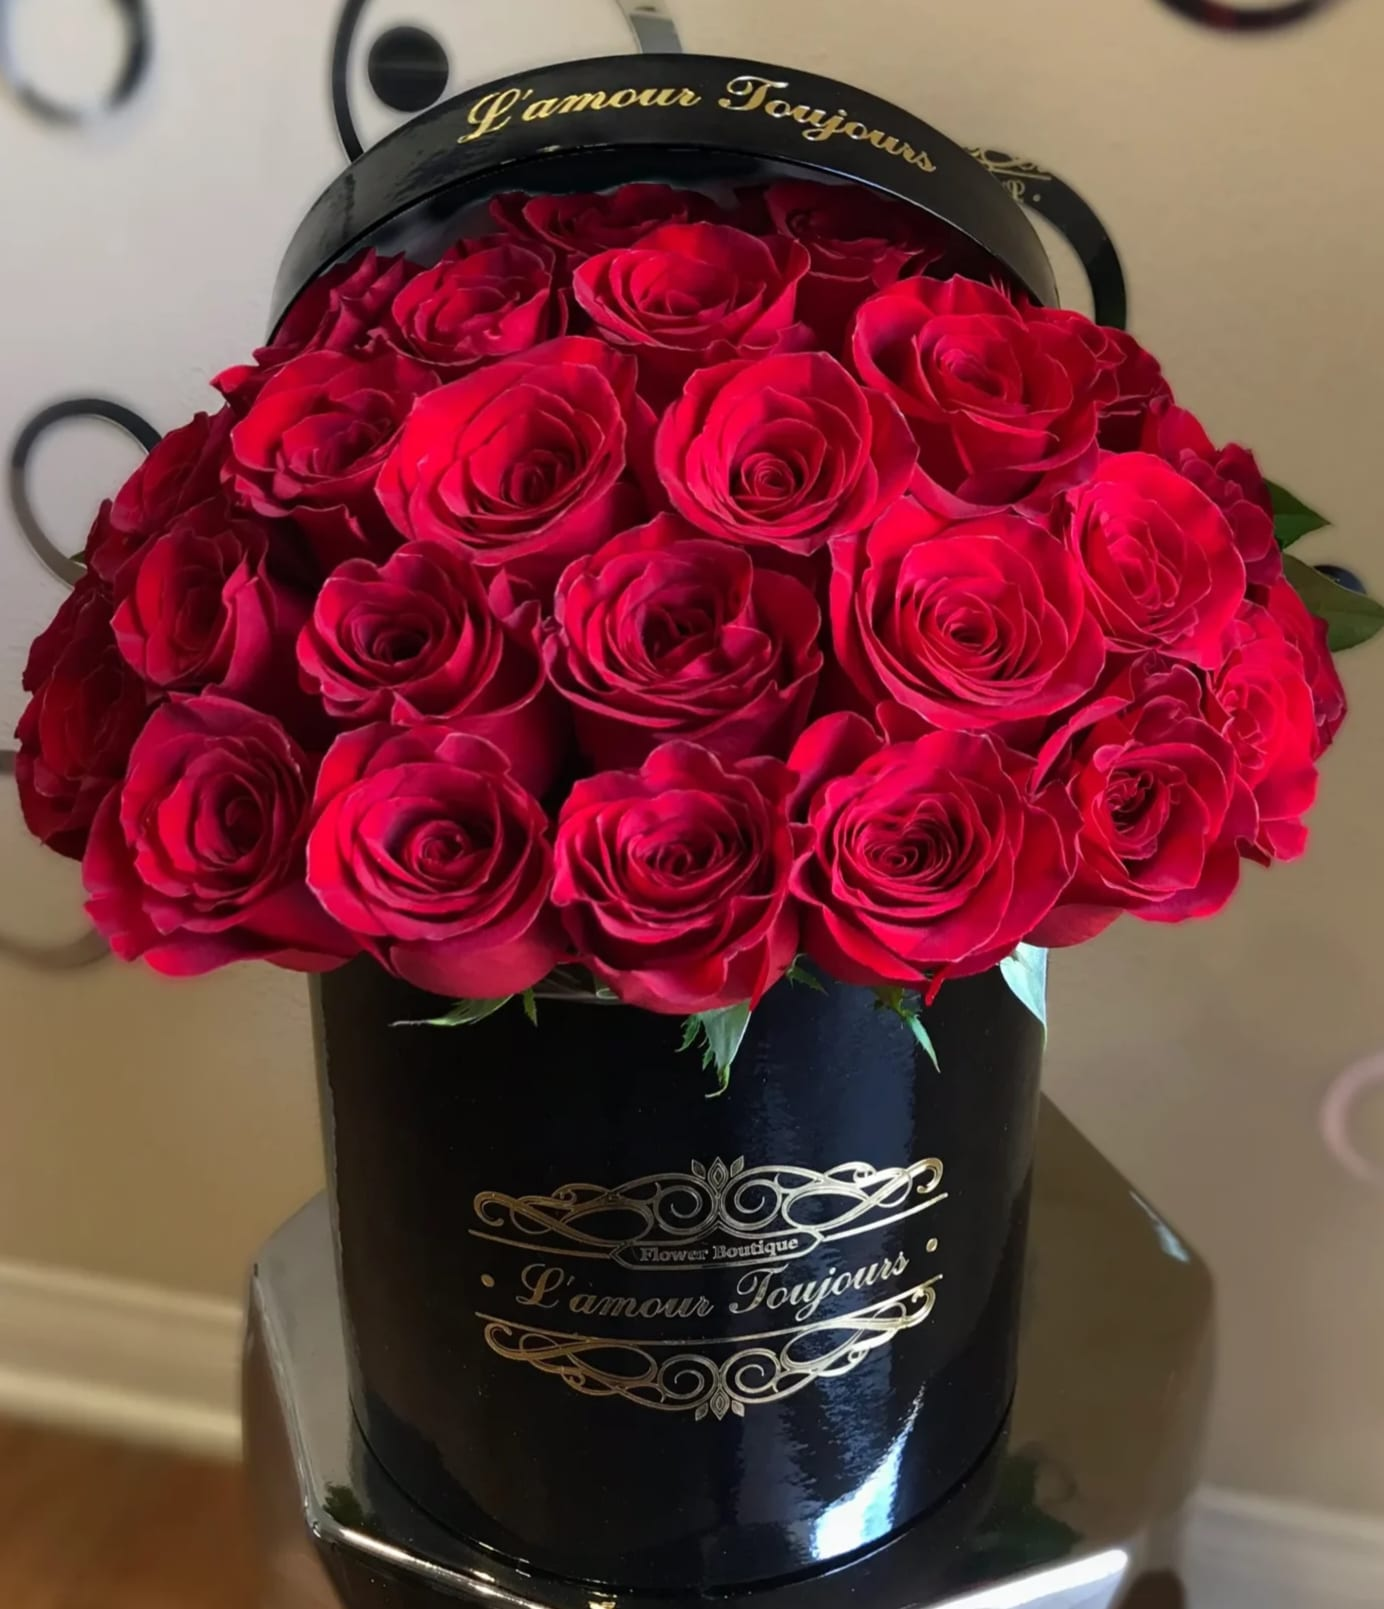 7ac2c5845 Classic Signature Box Red Roses. Classic Signature Box Red Roses - 25  Premium Red Roses You can change the color of